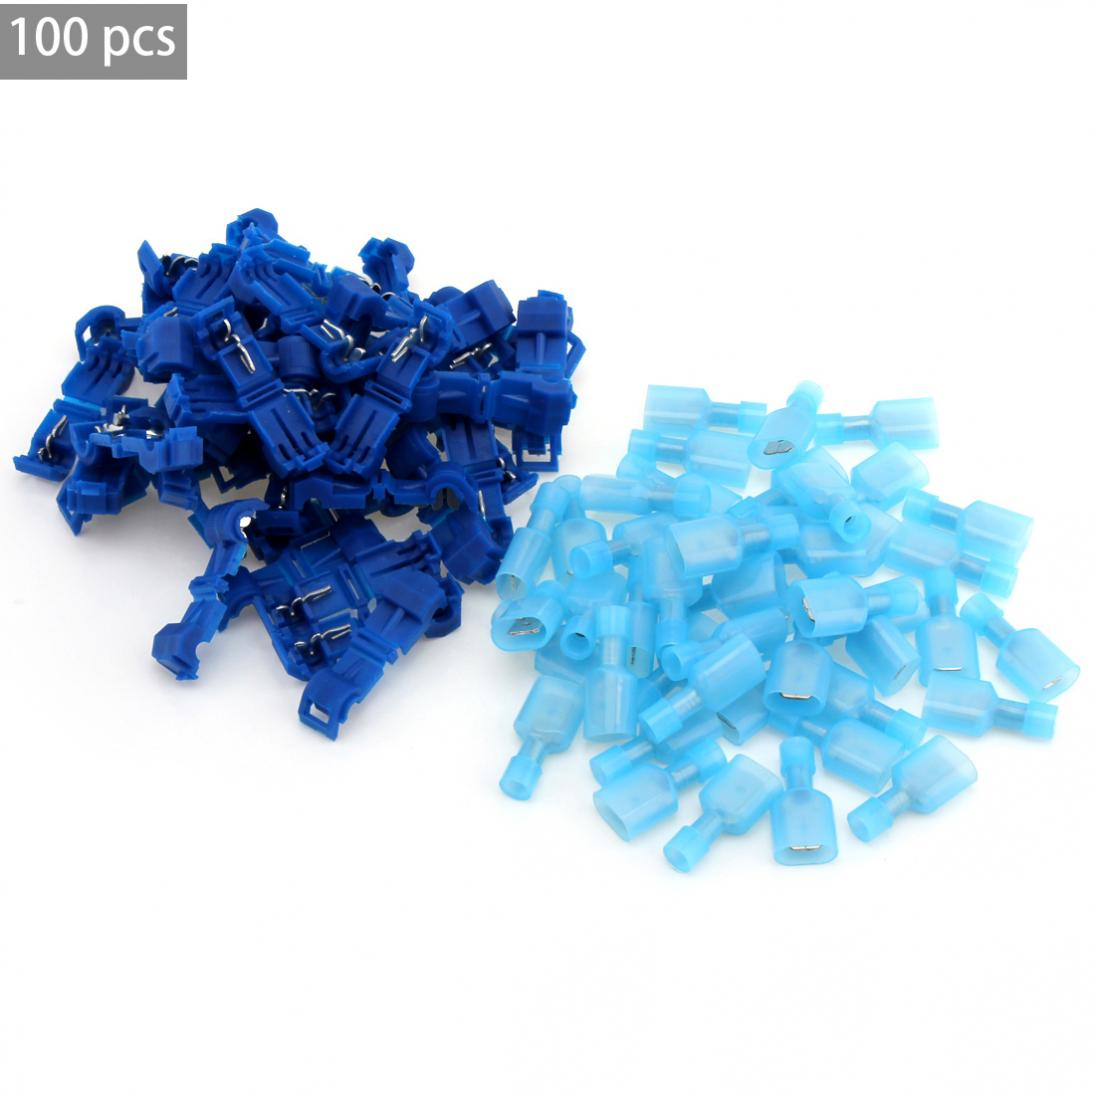 100Pcs T Tap Insulated Electrical Cable Connectors Quick Splice Wire Terminal Spade Crimp Connector